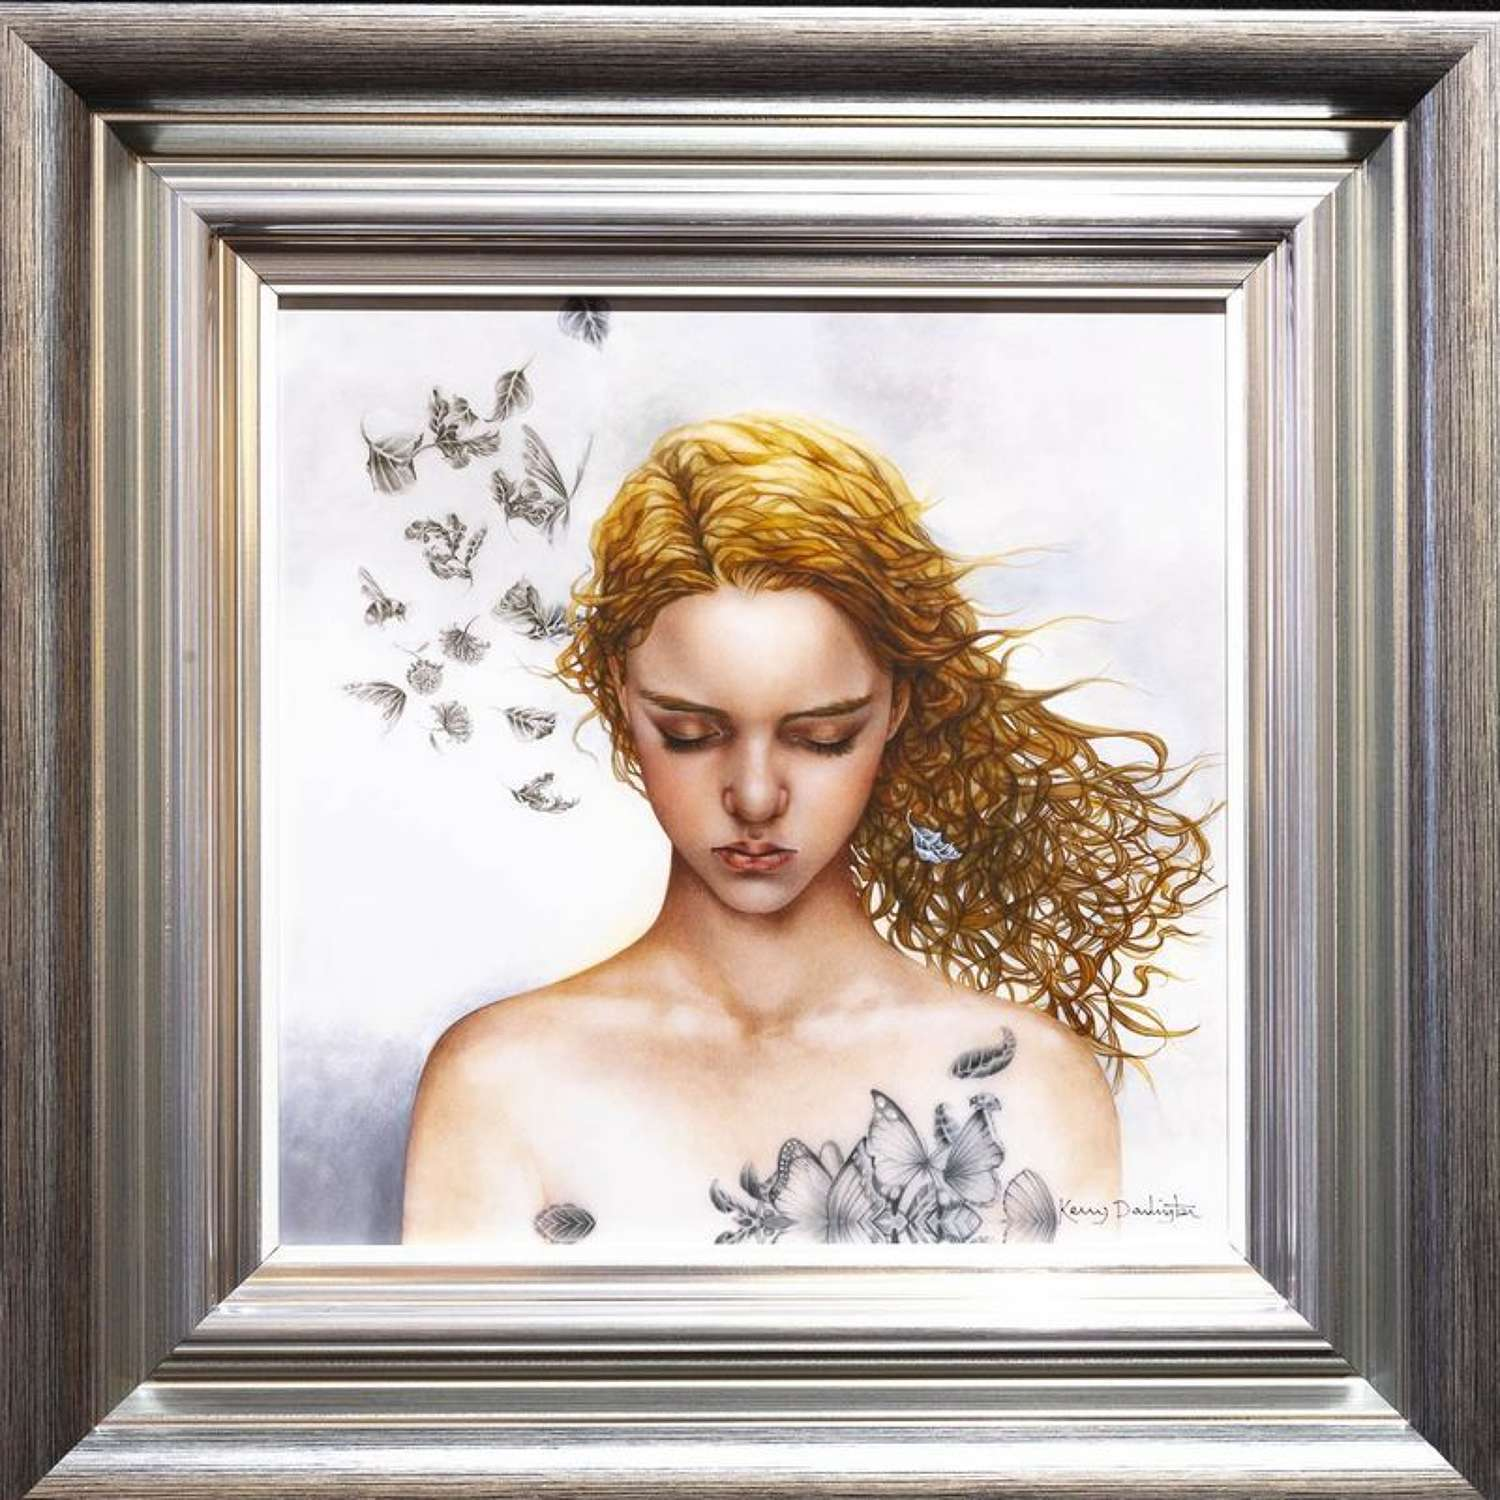 Becoming Nobody - Framed Art Print By Kerry Darlington